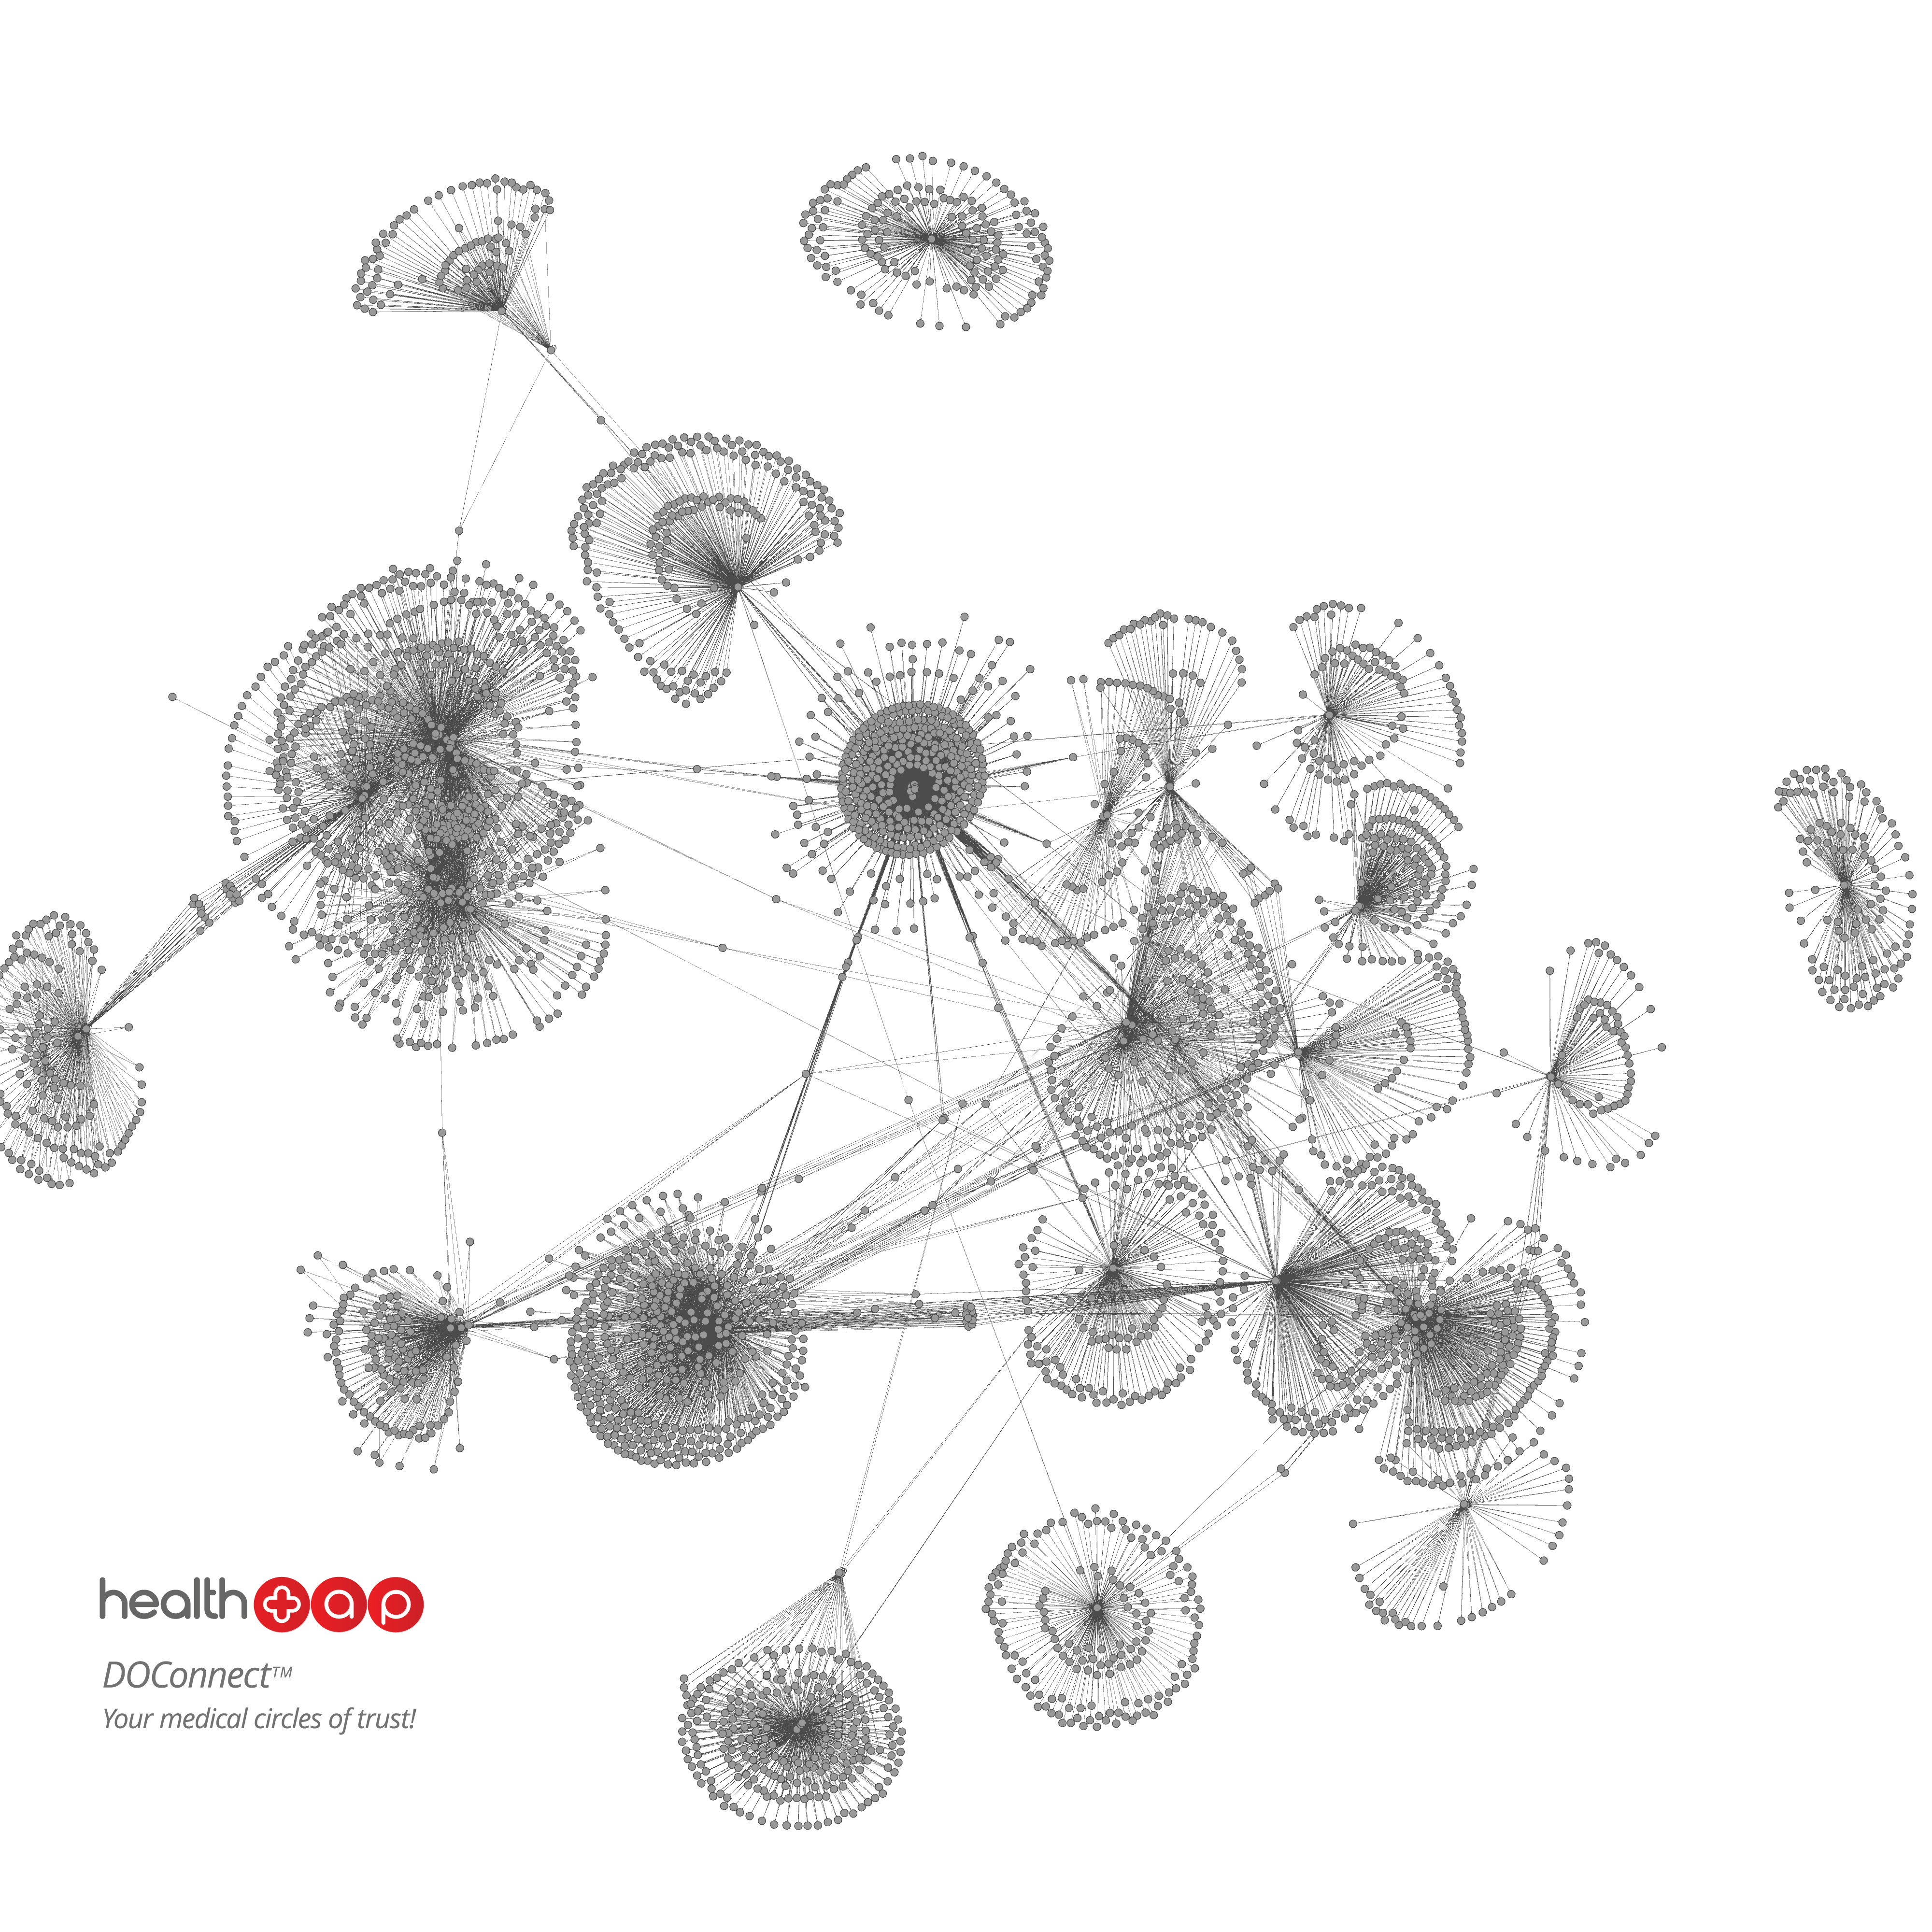 A HealthTap visualization of the connections between physicians on its site.